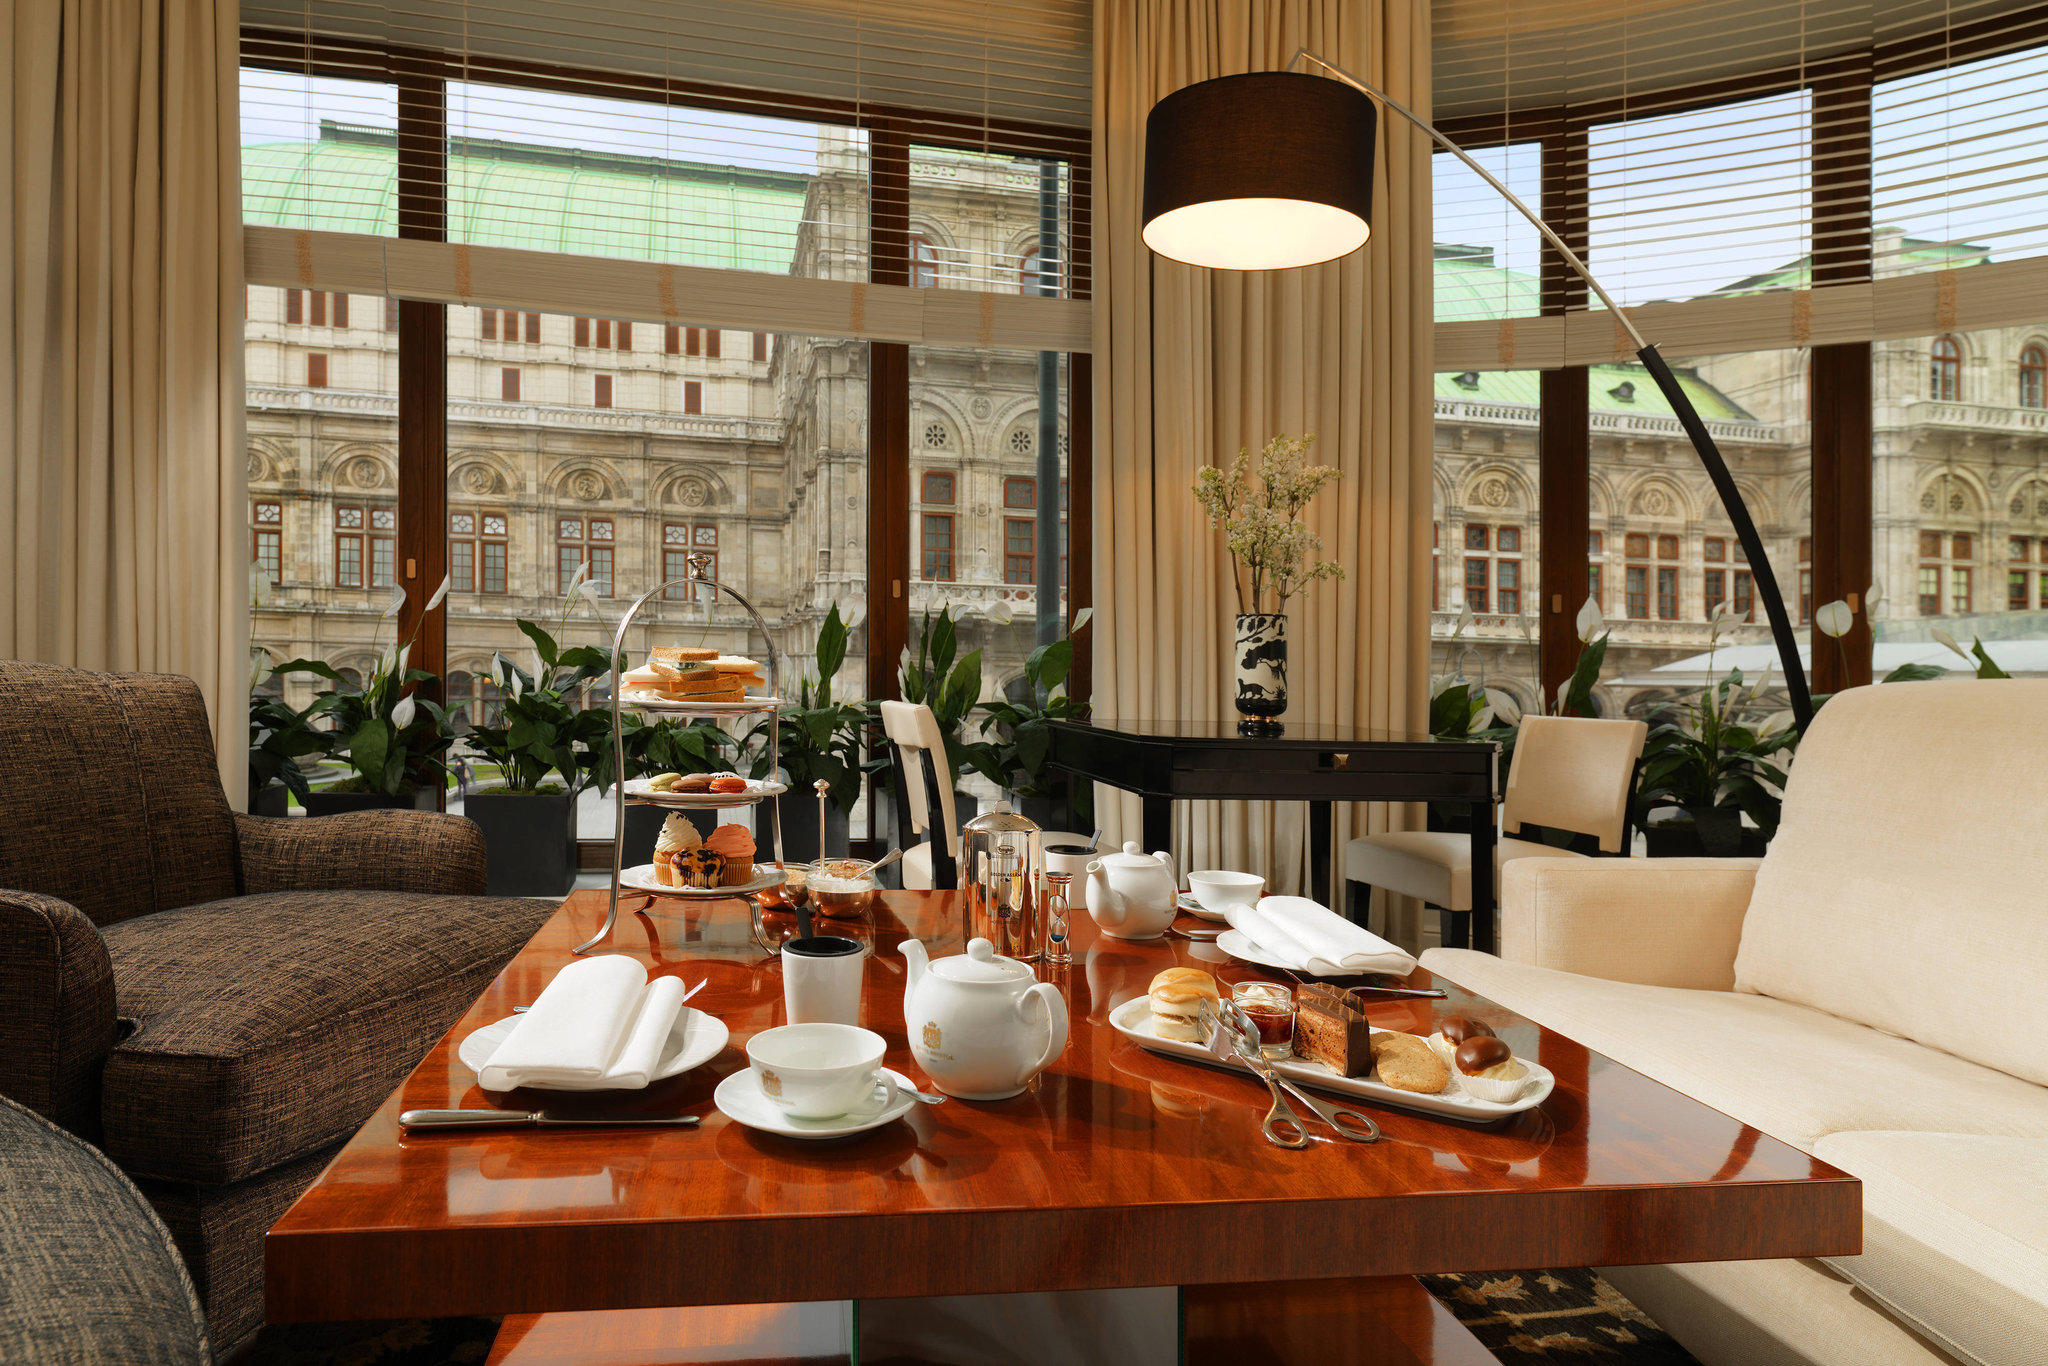 Bilder Hotel Bristol, a Luxury Collection Hotel, Vienna